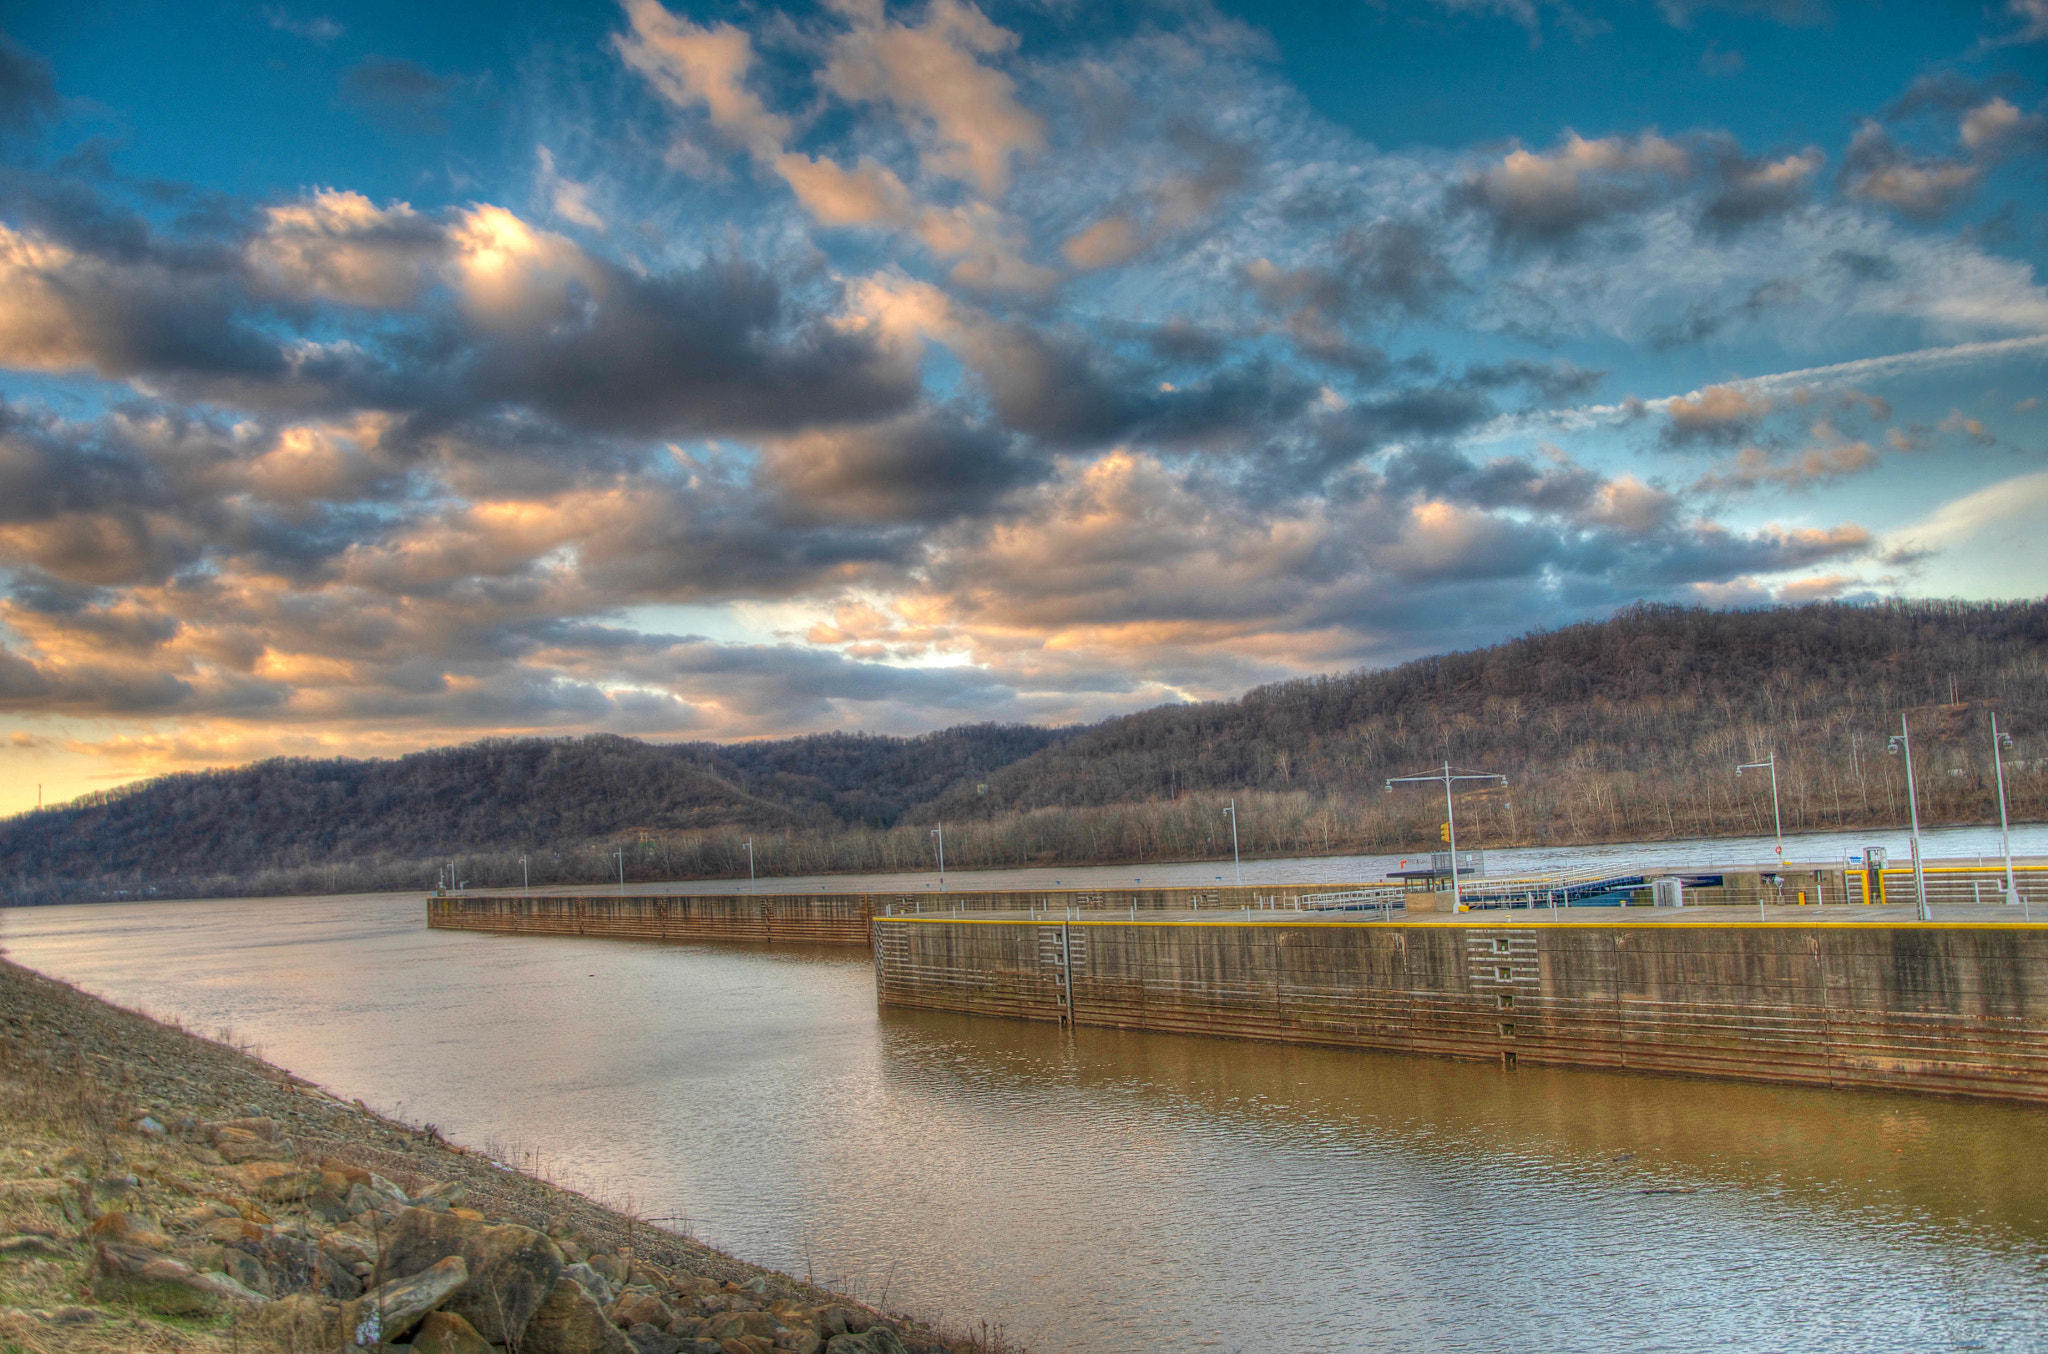 Photograph Dam HDR by Jason Foose on 500px